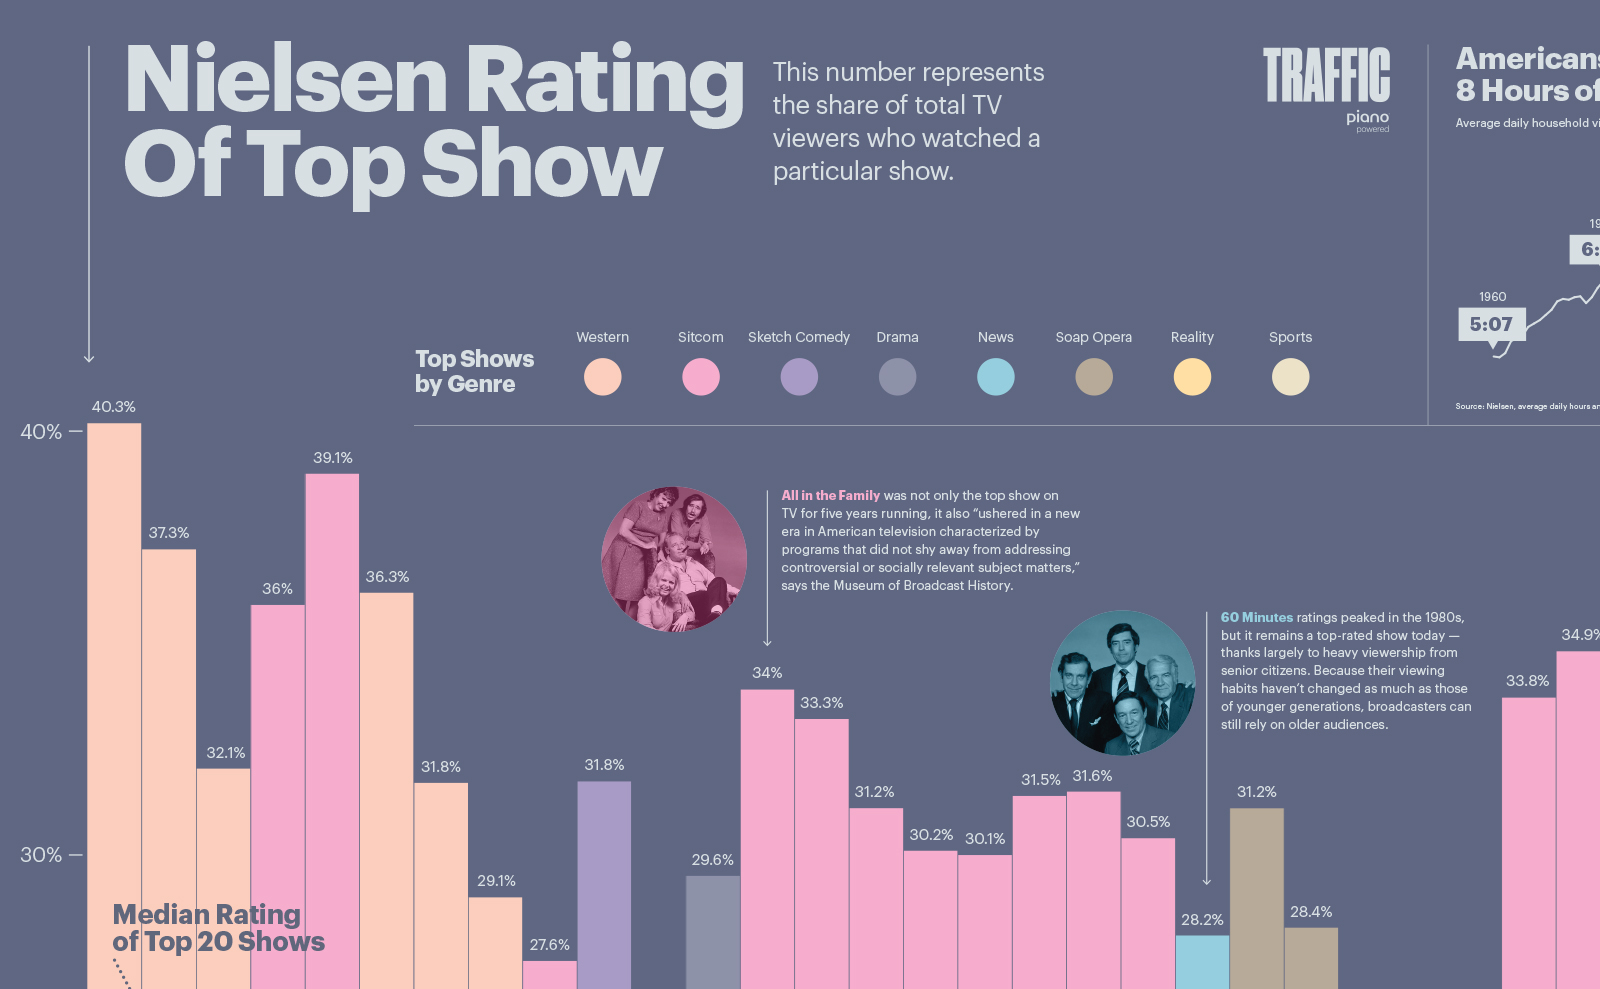 Nielsen Rating of Top Shows Traffic magazine poster detail